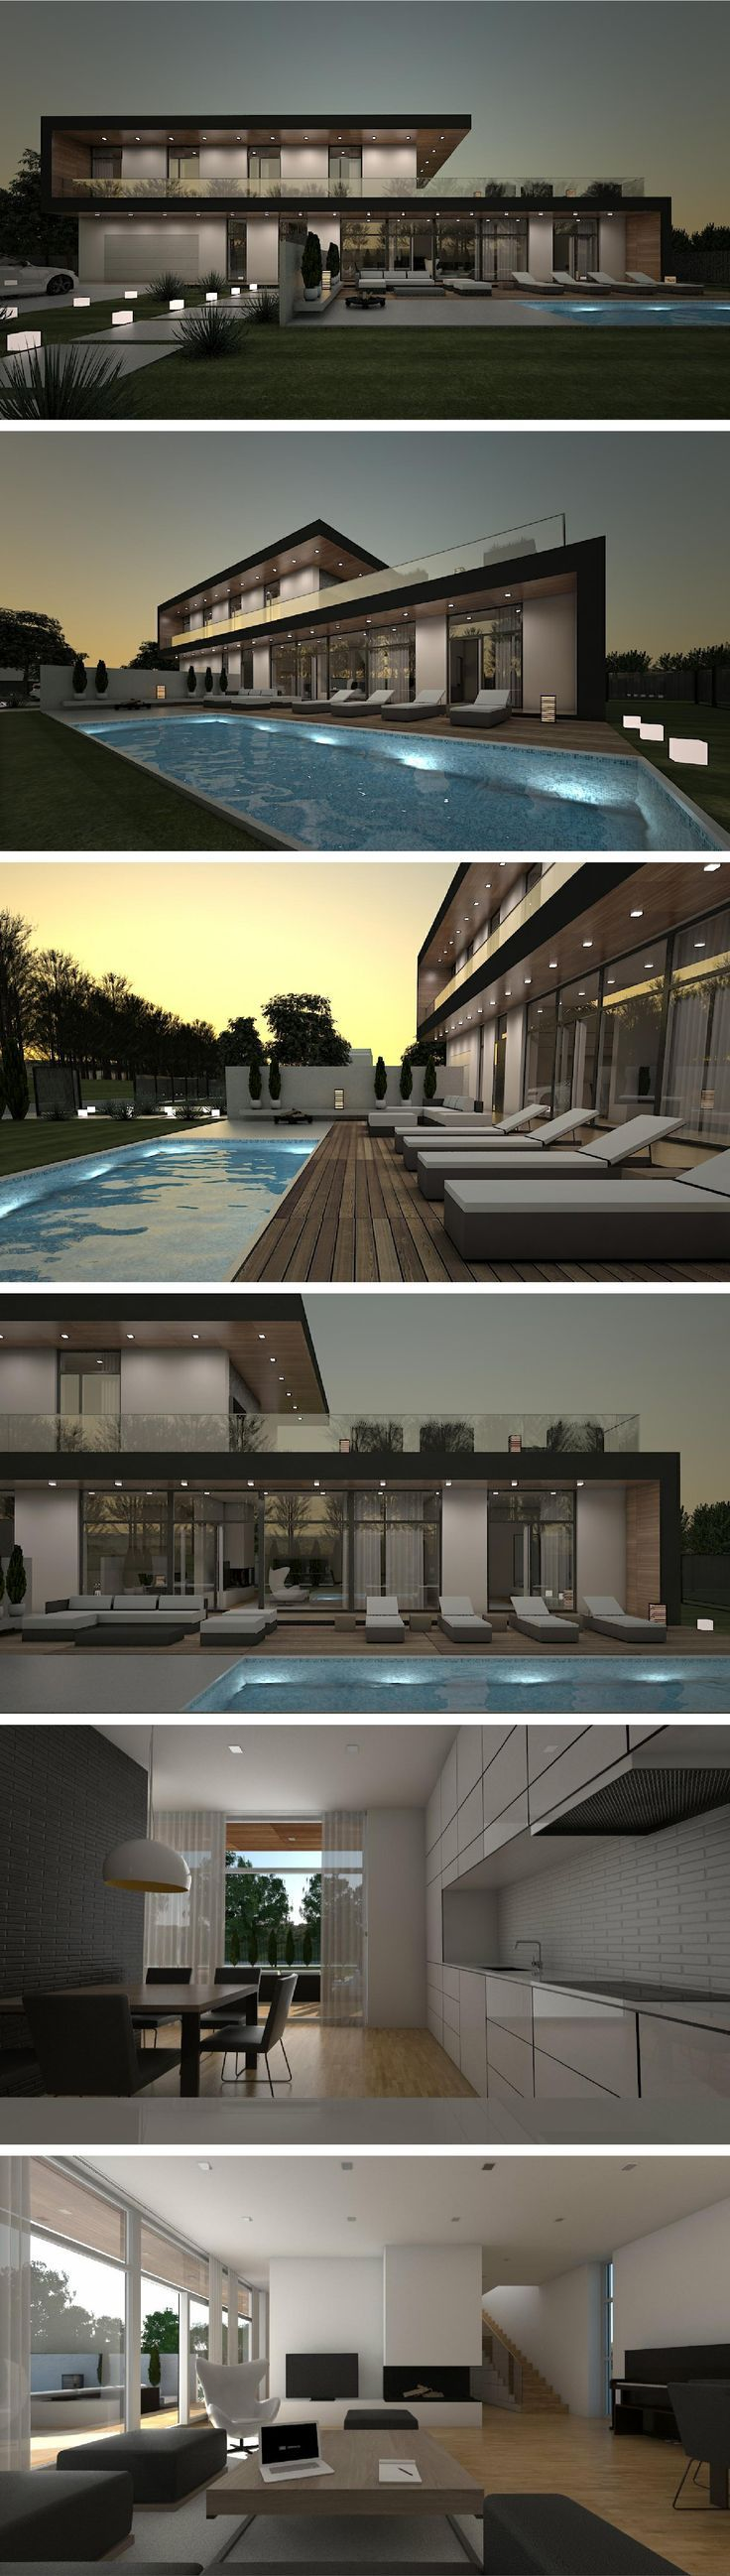 6383 best dream home images on pinterest architecture facades modern house in vilnius by ng architects www lt luxury abodes luxury homes